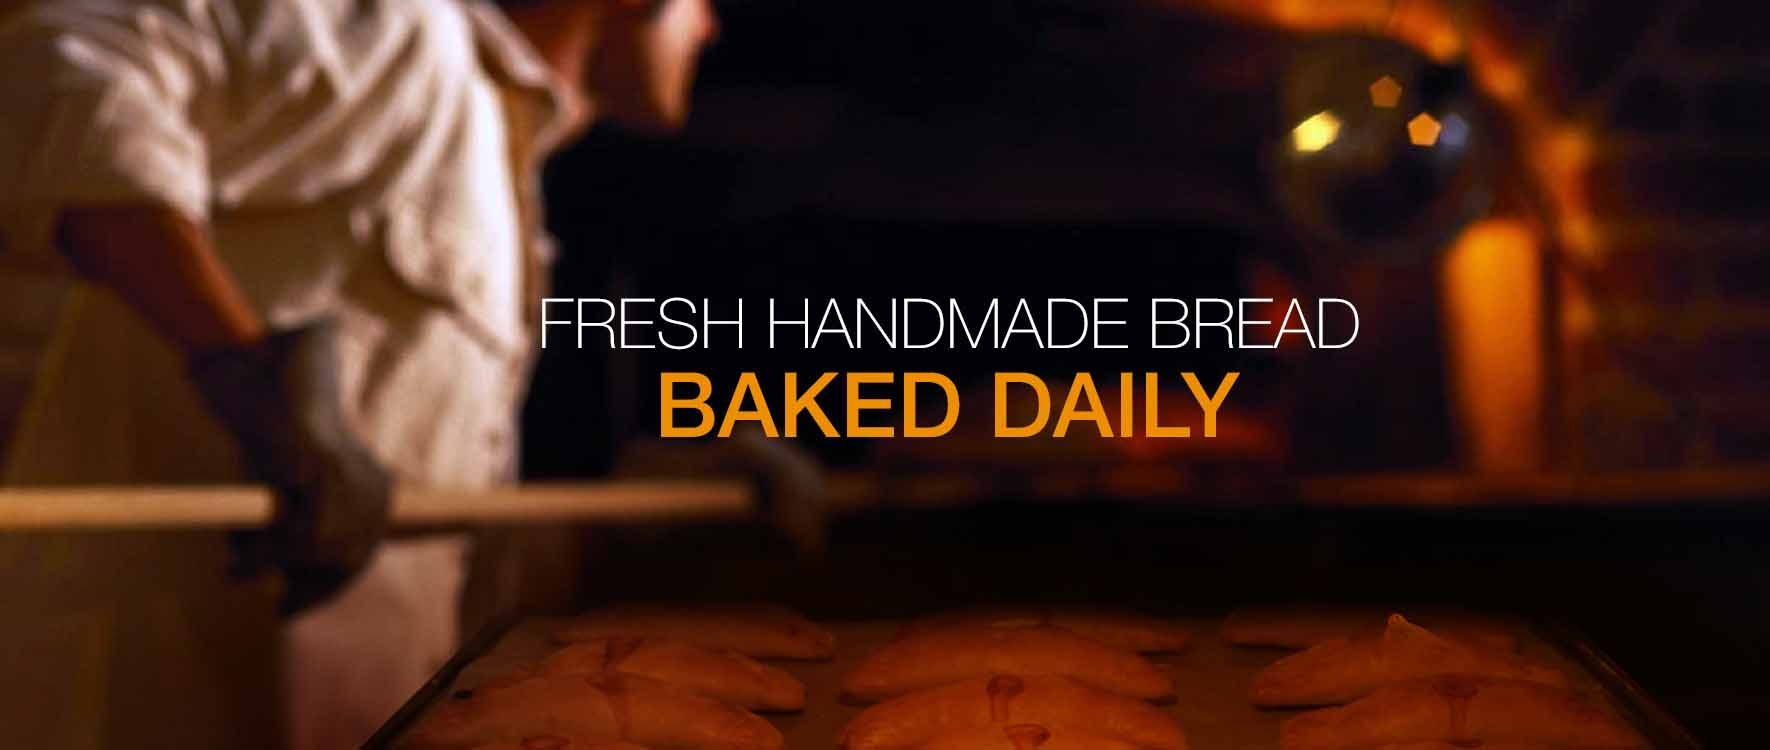 See Our Range Of Freshly Baked Bread